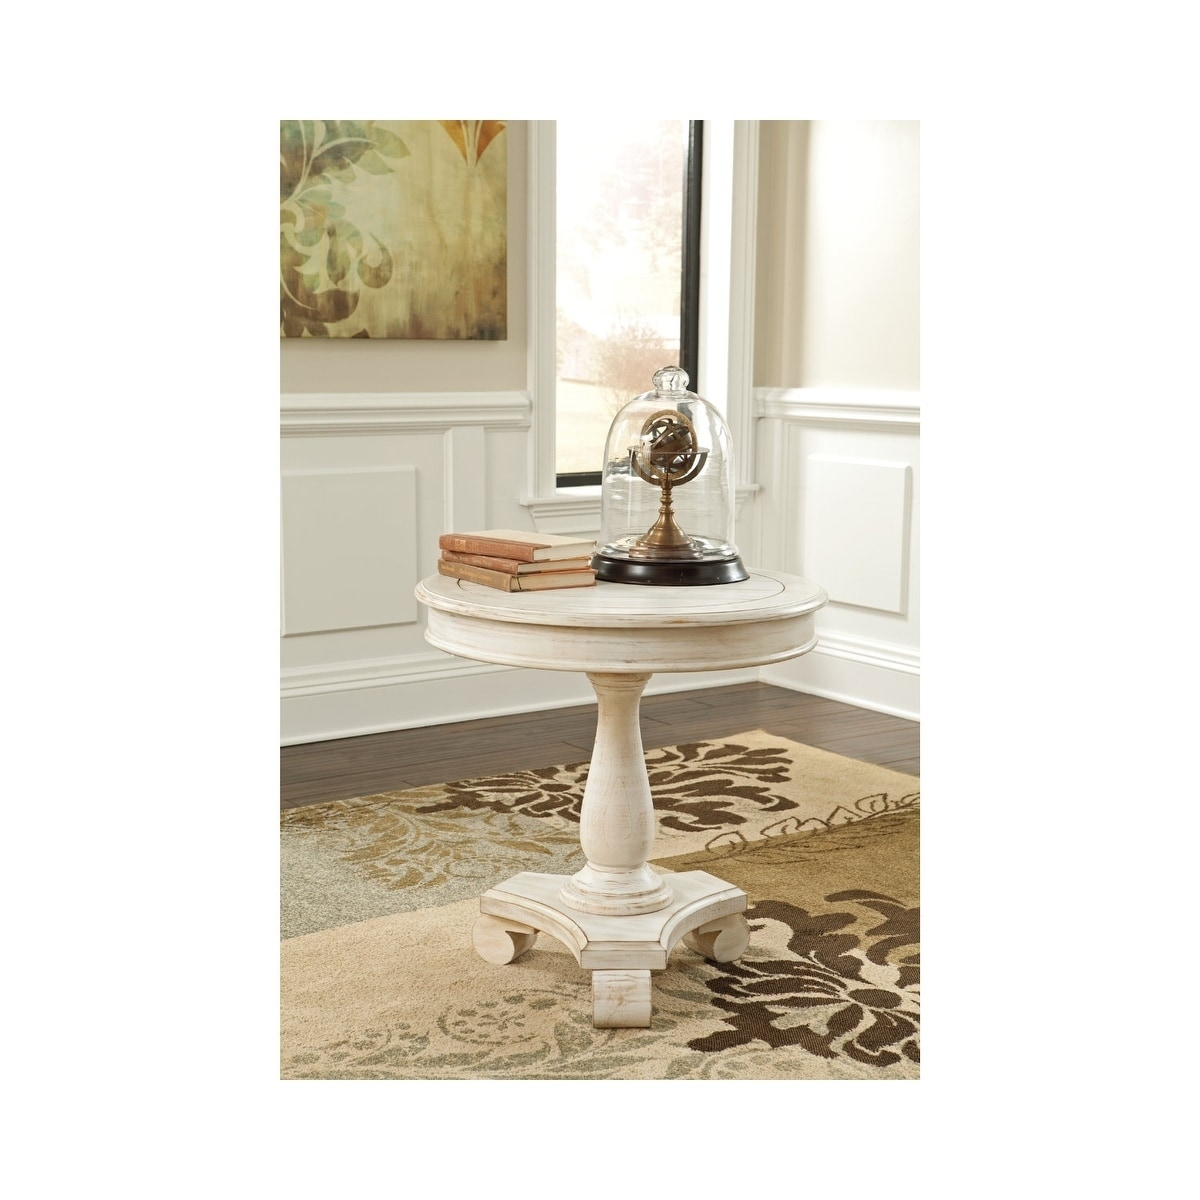 Shop Signature Design By Ashley Mirimyn White Round Accent Table   Free  Shipping Today   Overstock.com   10735748